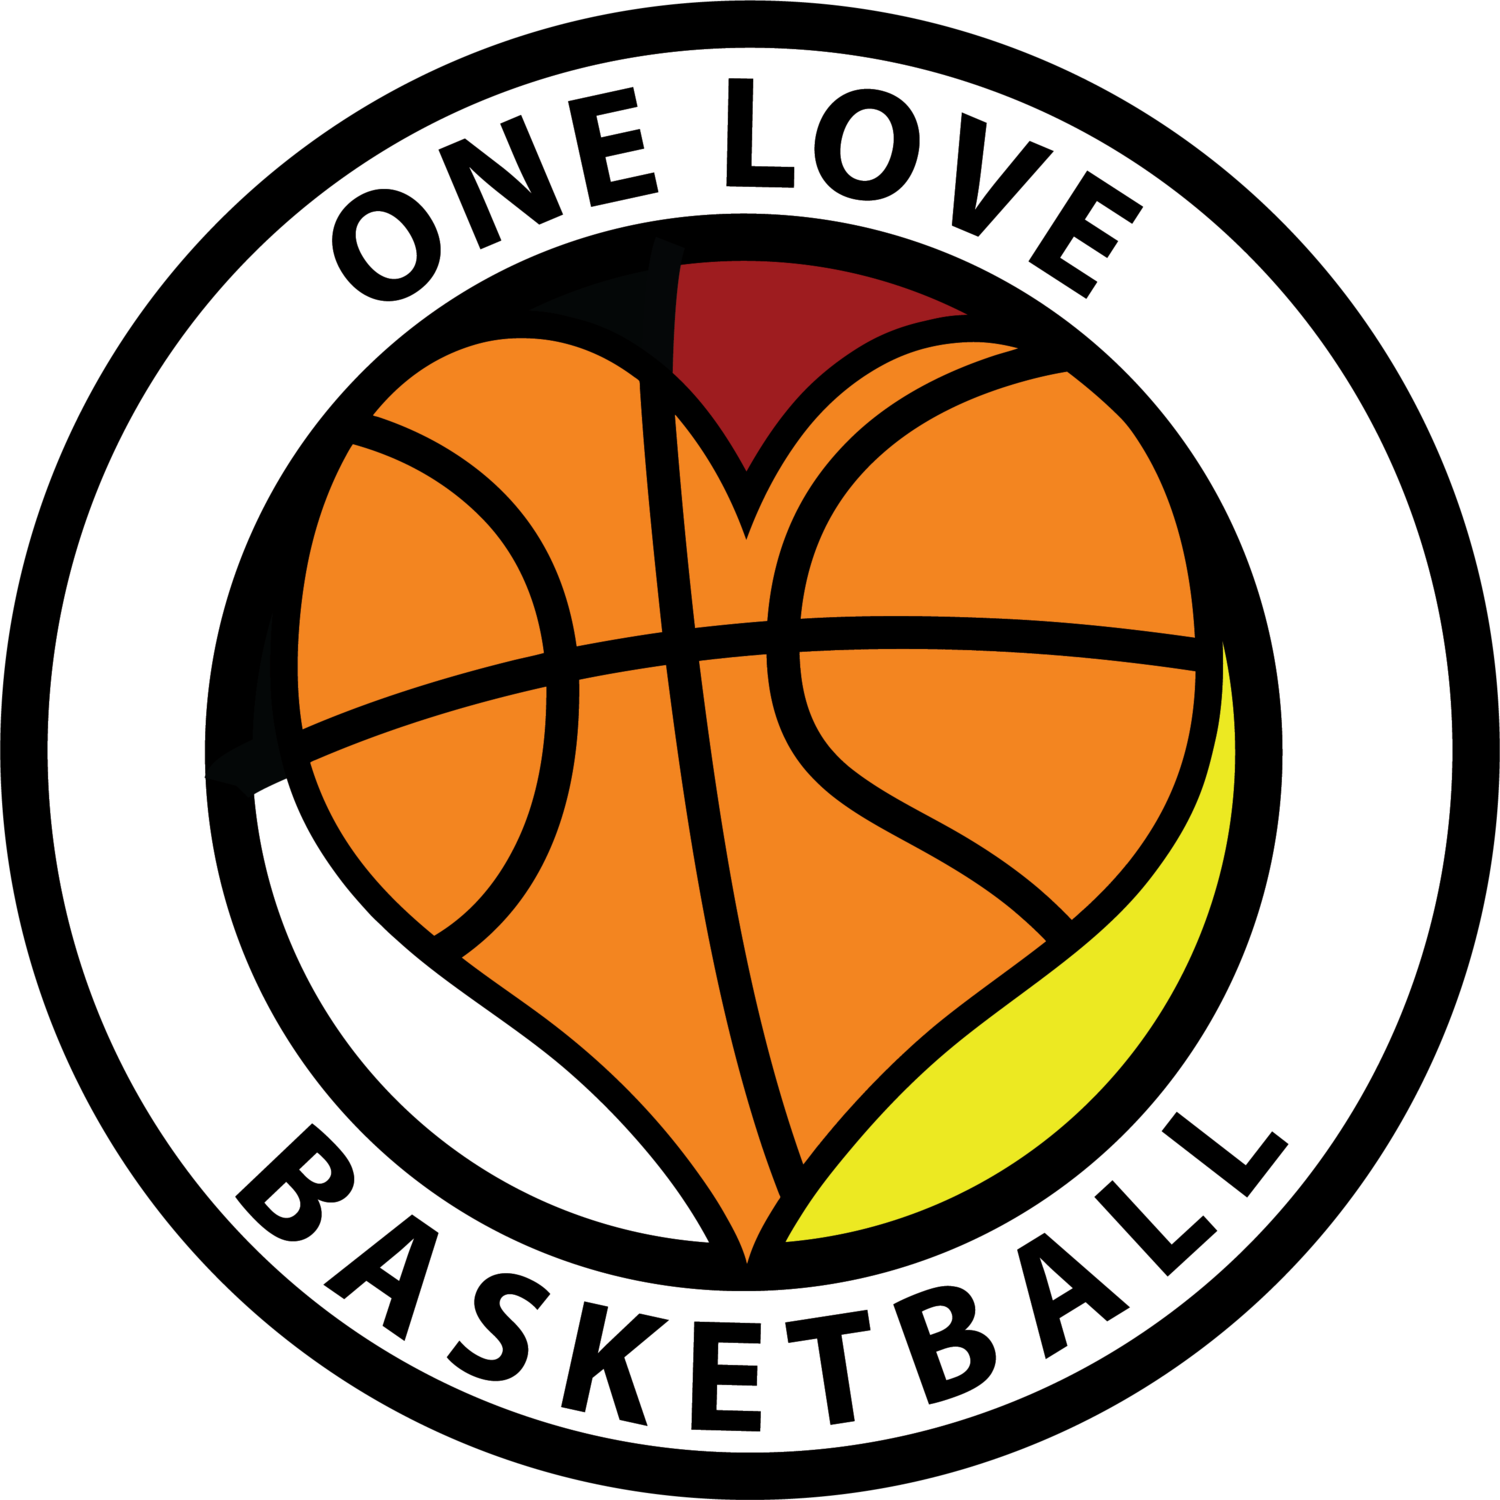 Outdoor basketball court clipart graphic transparent library One Love Basketball graphic transparent library